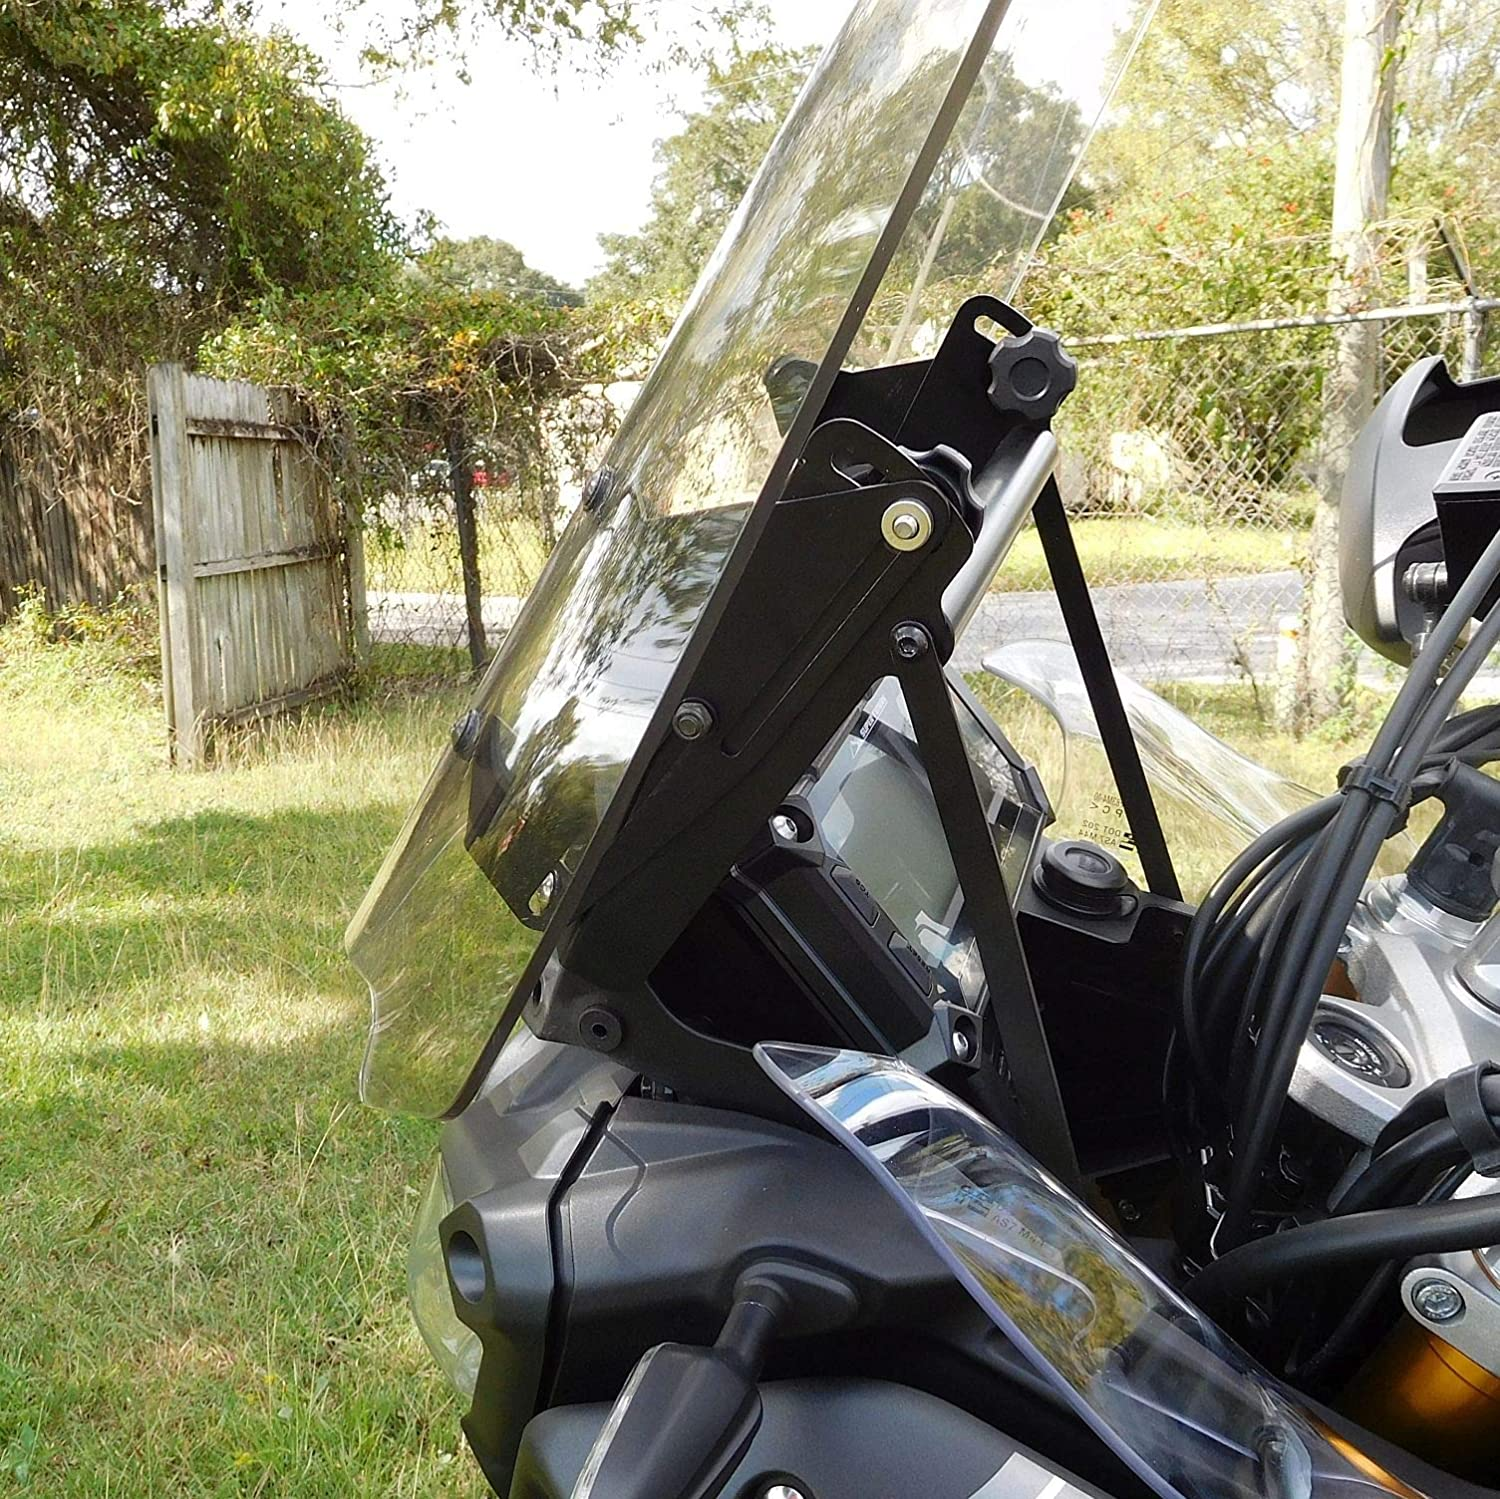 22, Clear 2014 - Up Yamaha Super Tenere XT1200Z Compatible Adjustable Motorcycle Windshield System by Madstad Engineering